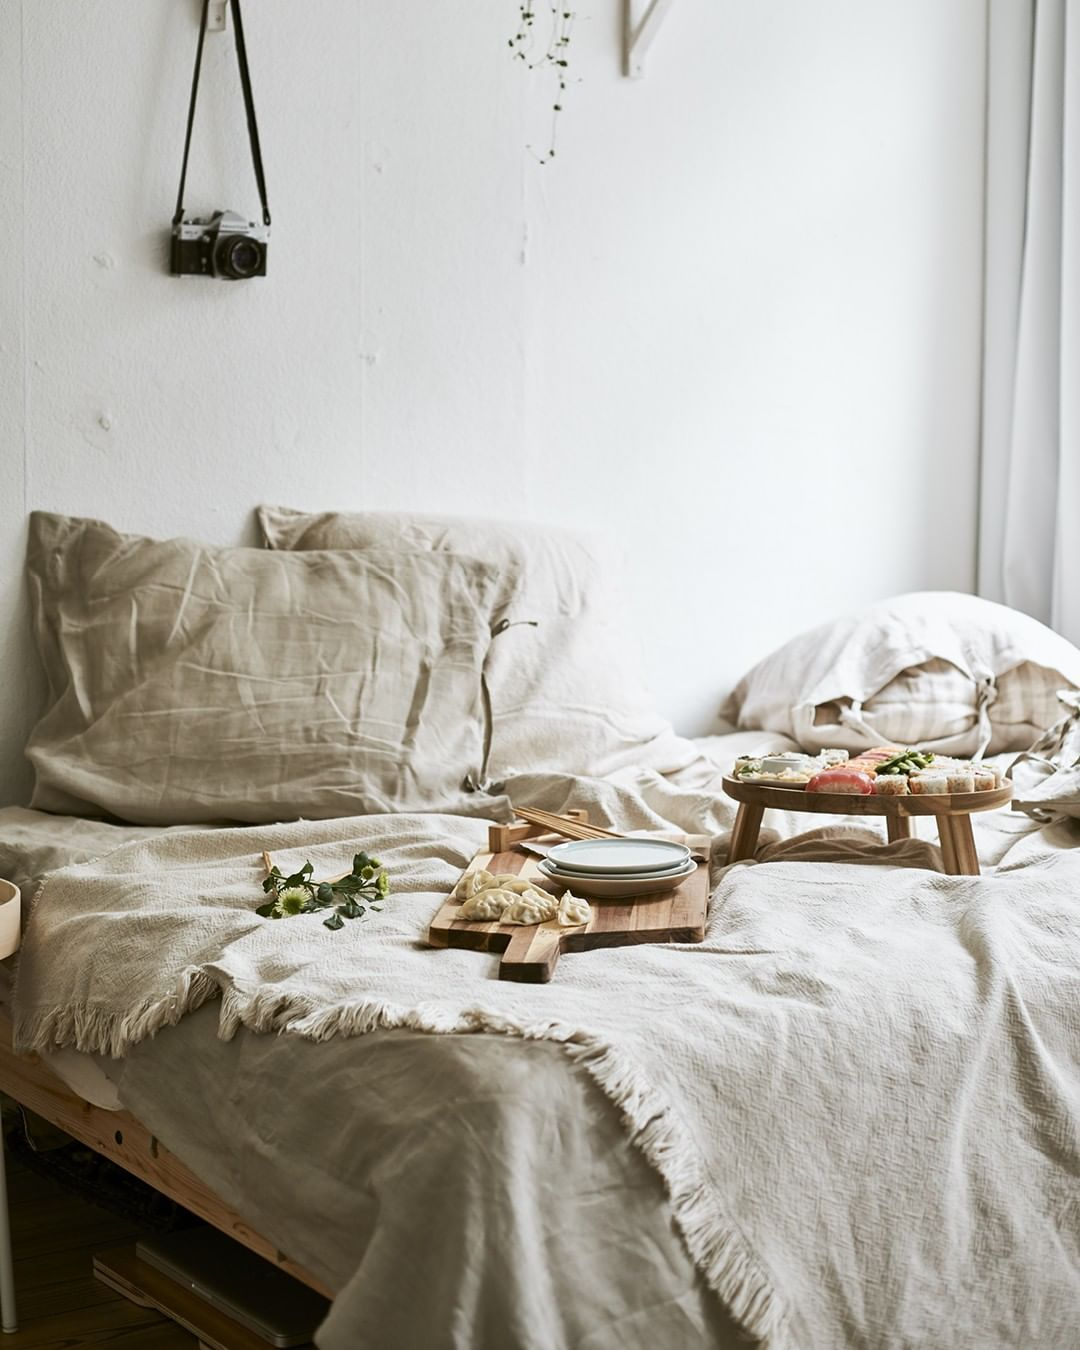 Ikea Australia On Instagram Our Beautiful Puderviva Range Is Made Of 100 Linen A Durable Fibre From The Flax P Ikea Australia Bed Linen Australia Ikea Bed